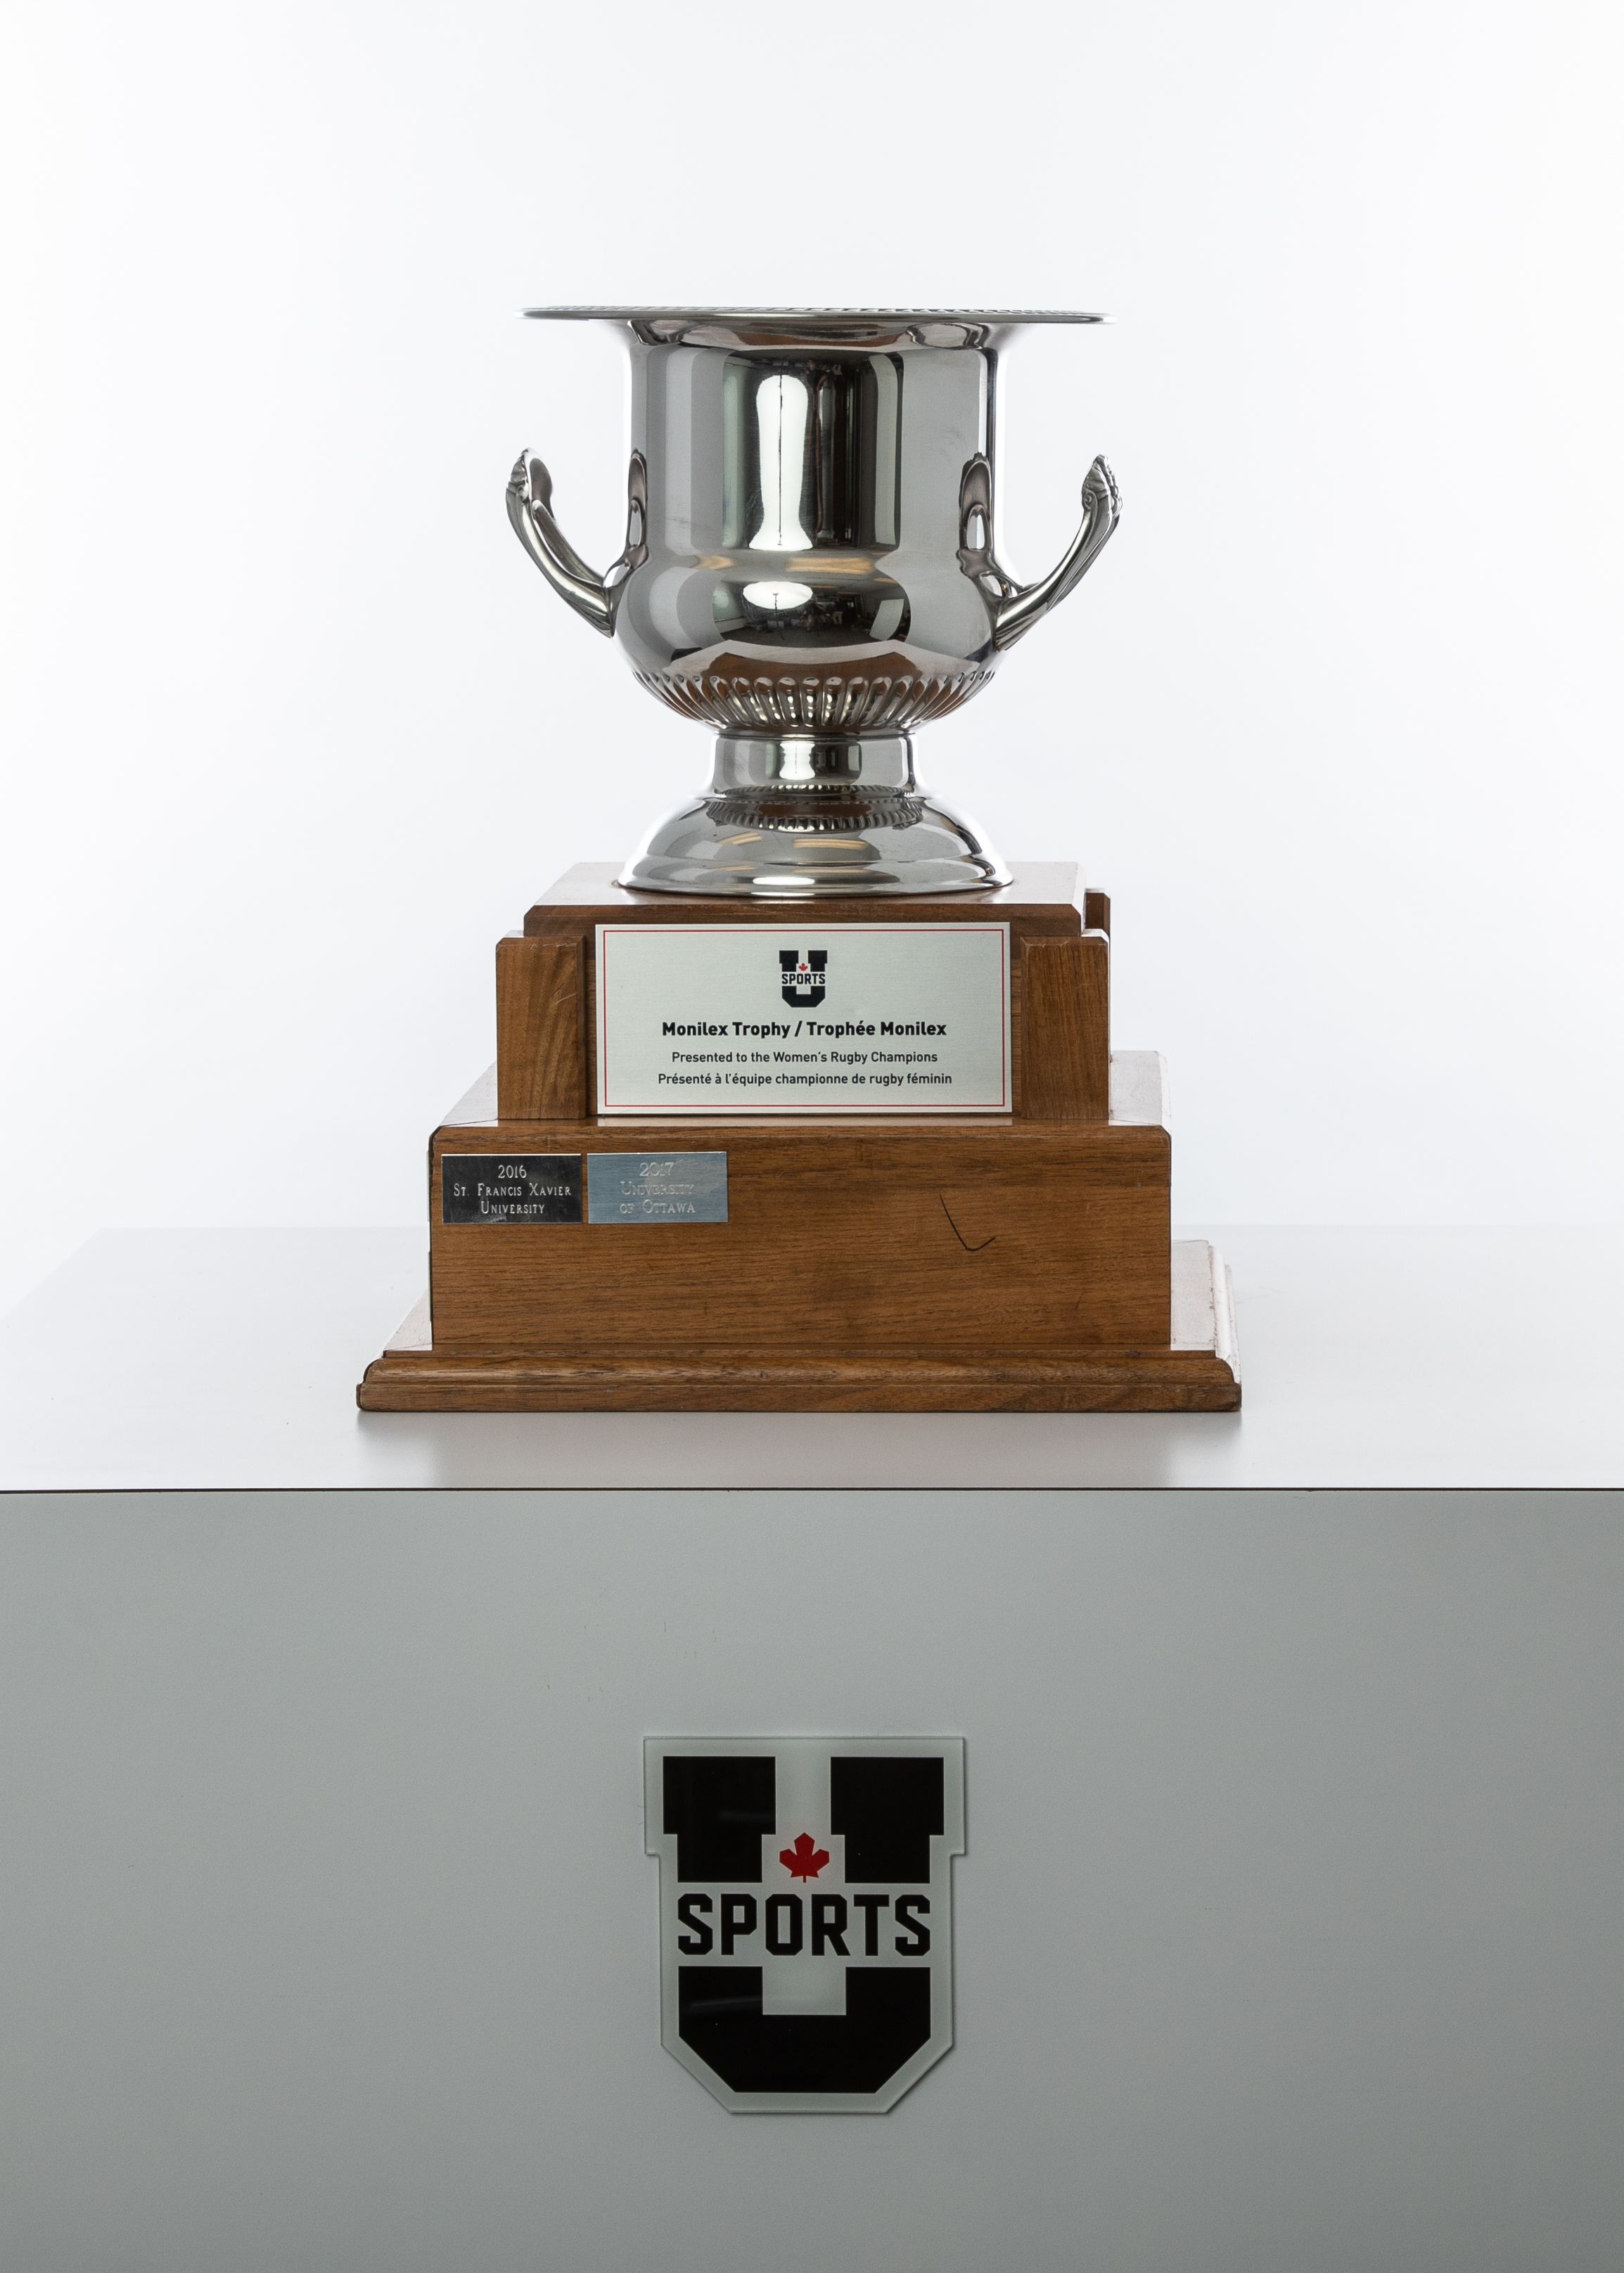 Monilex_Trophy-_Front.jpg (2.48 MB)